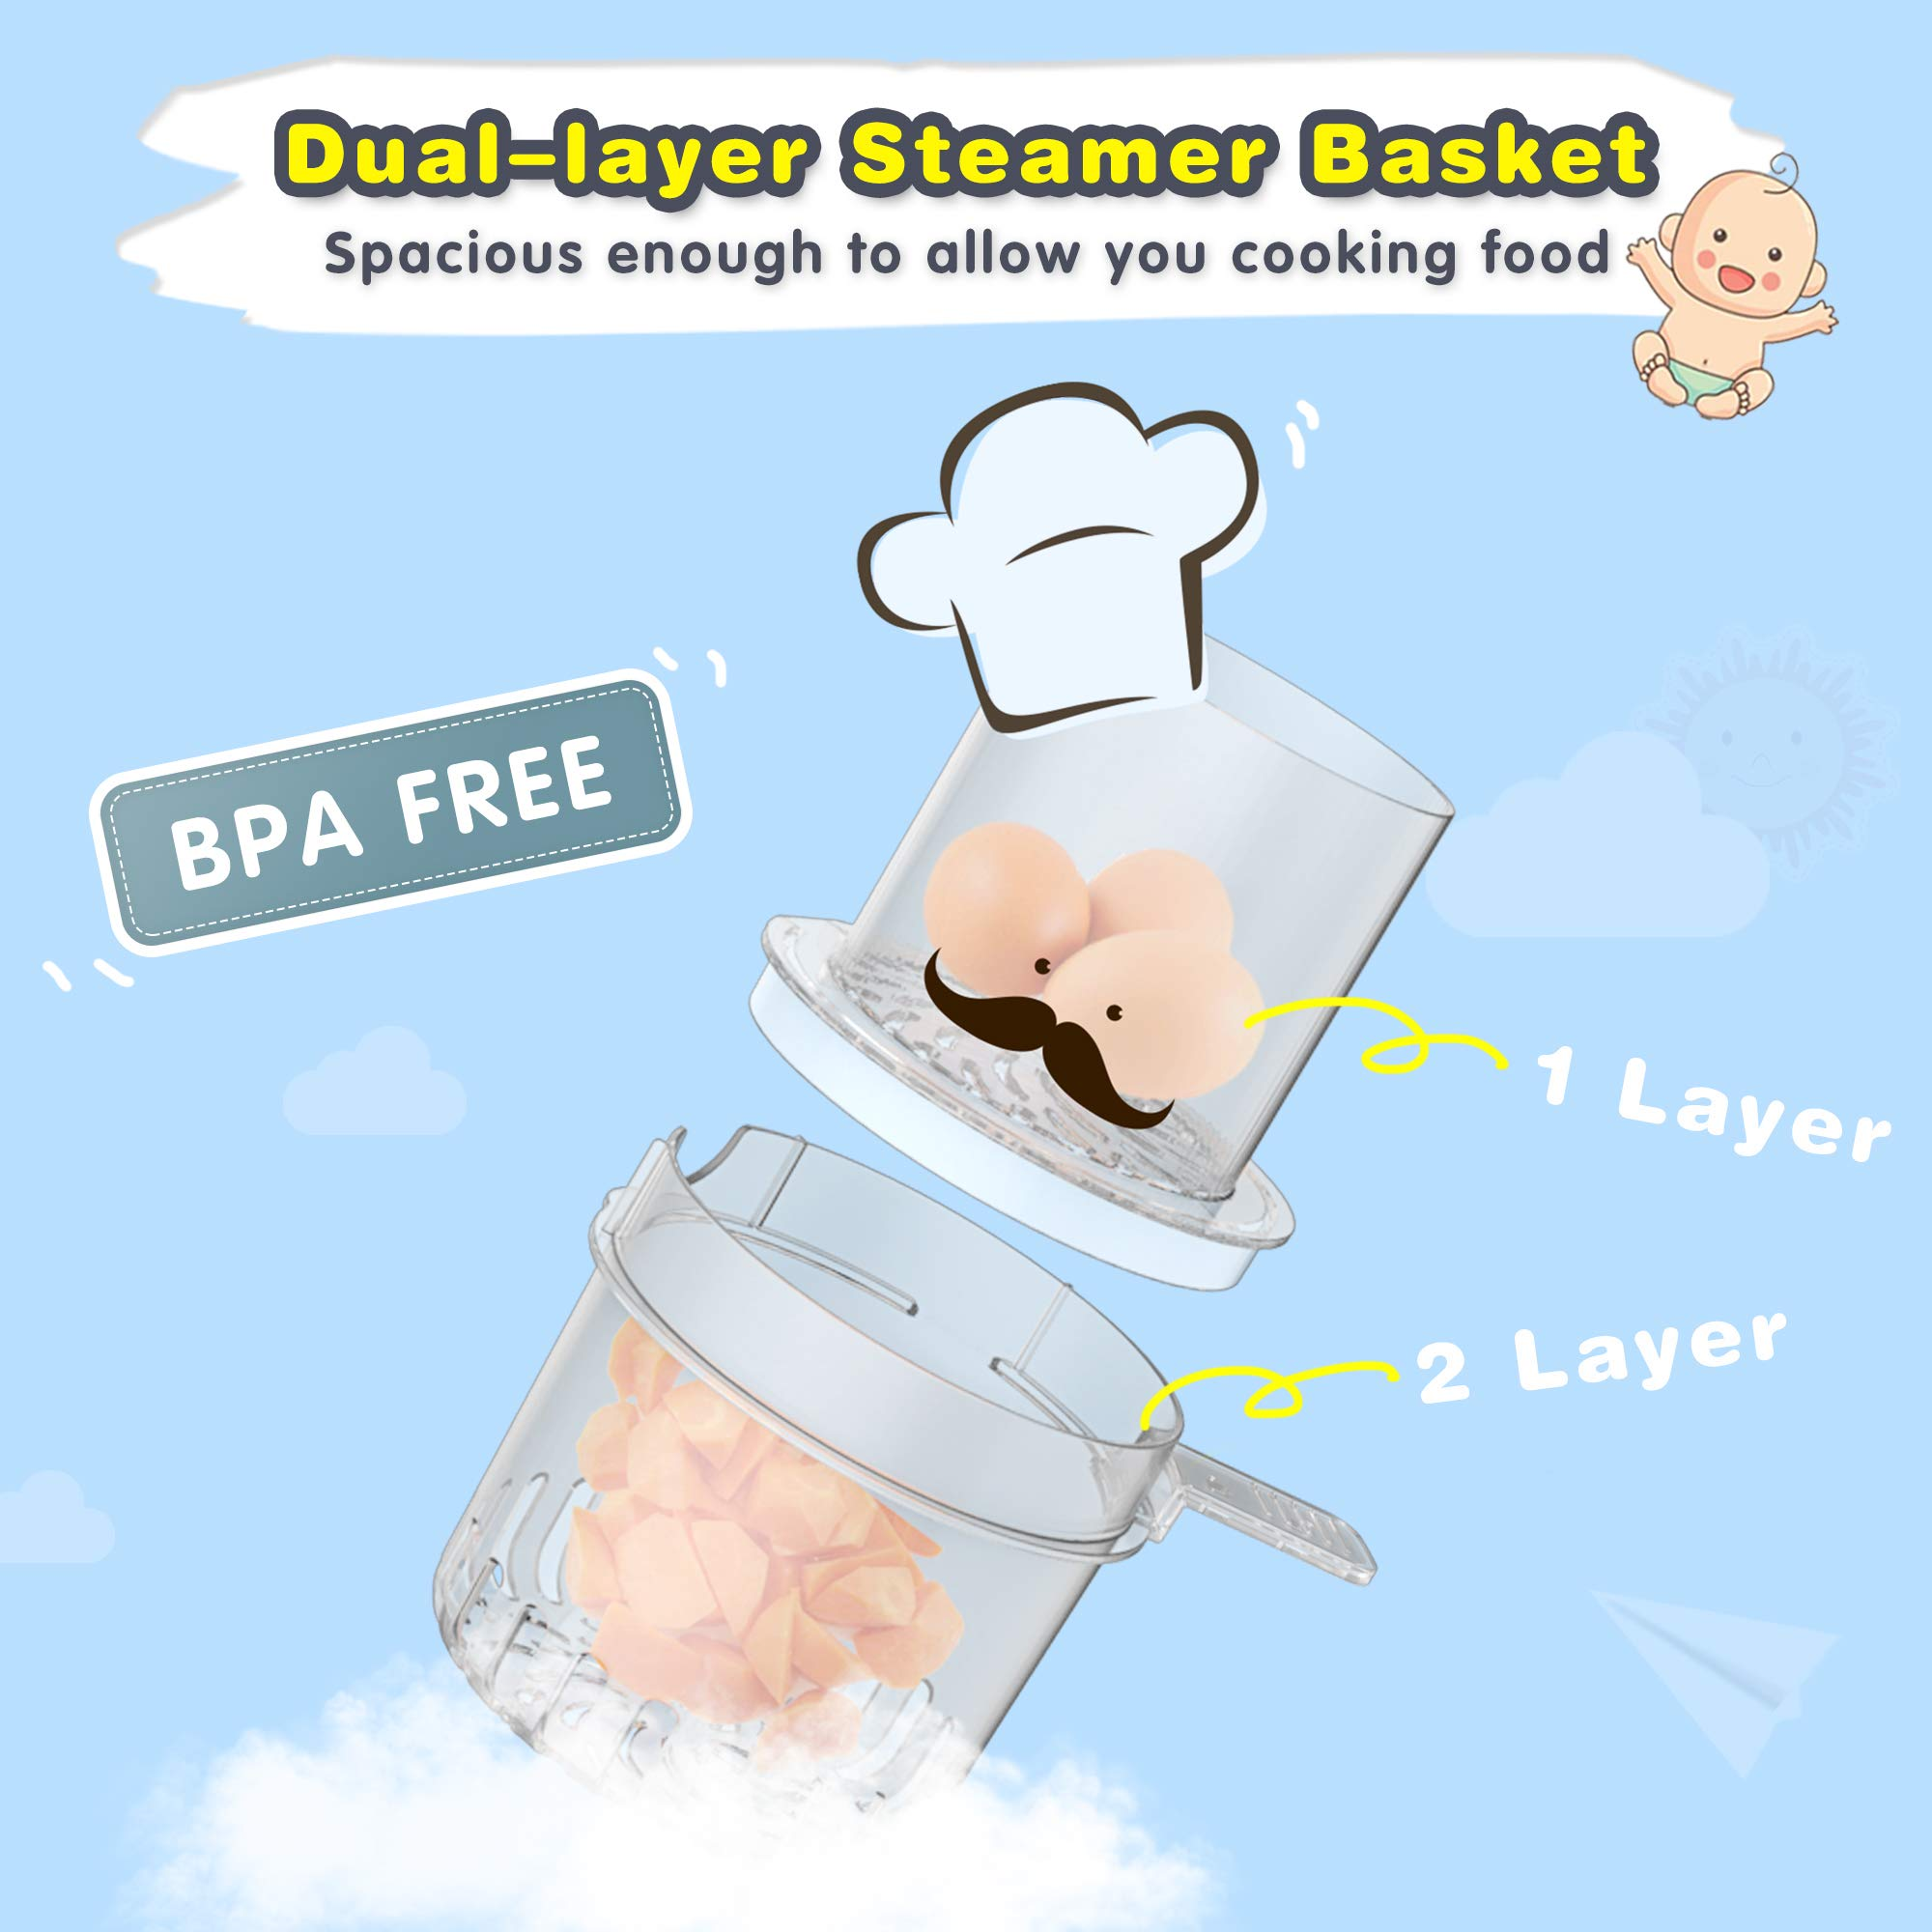 Elechomes Baby Food Maker Processor, Double Steam Basket Cooker with Timer, Blender, Steamer for Baby Infants Toddlers Food by Elechomes (Image #4)